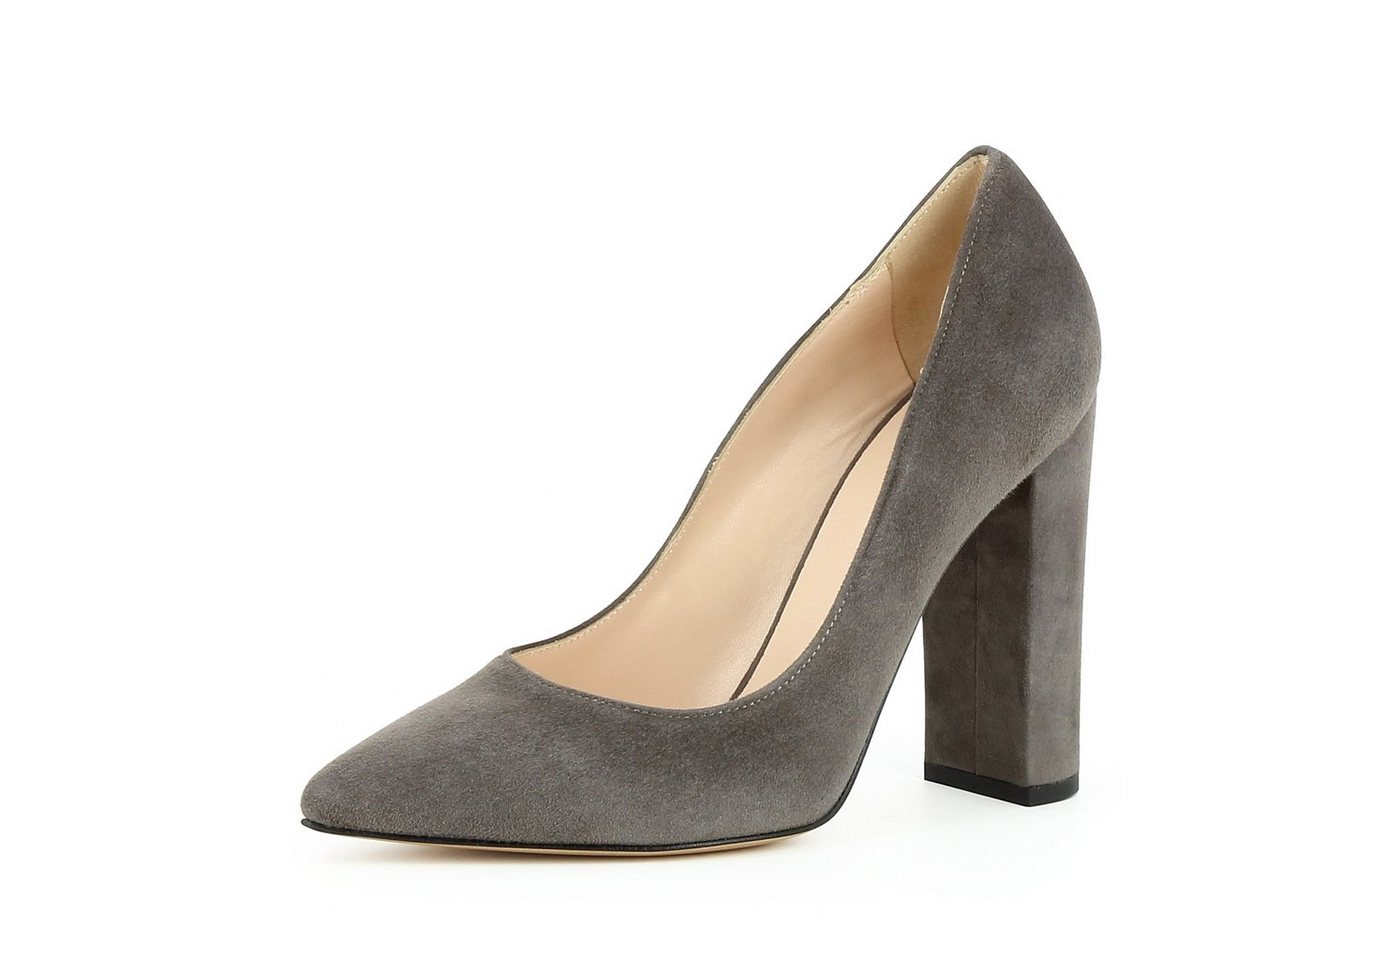 Evita »ALINA« High-Heel-Pumps | Schuhe > High Heels | Braun | Co | Evita